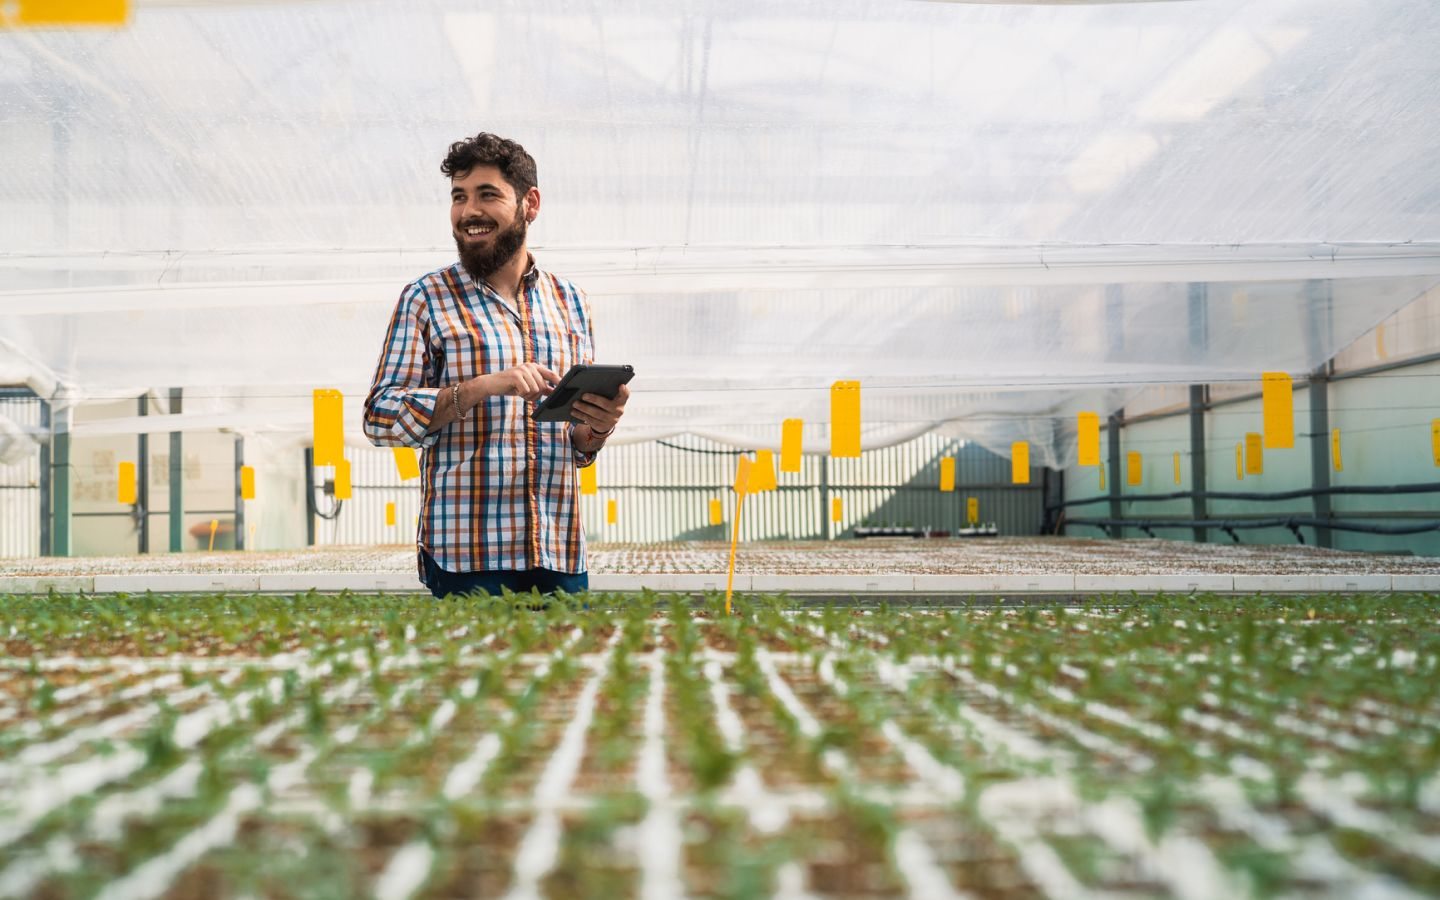 Smiling man in a greenhouse with green produce growing